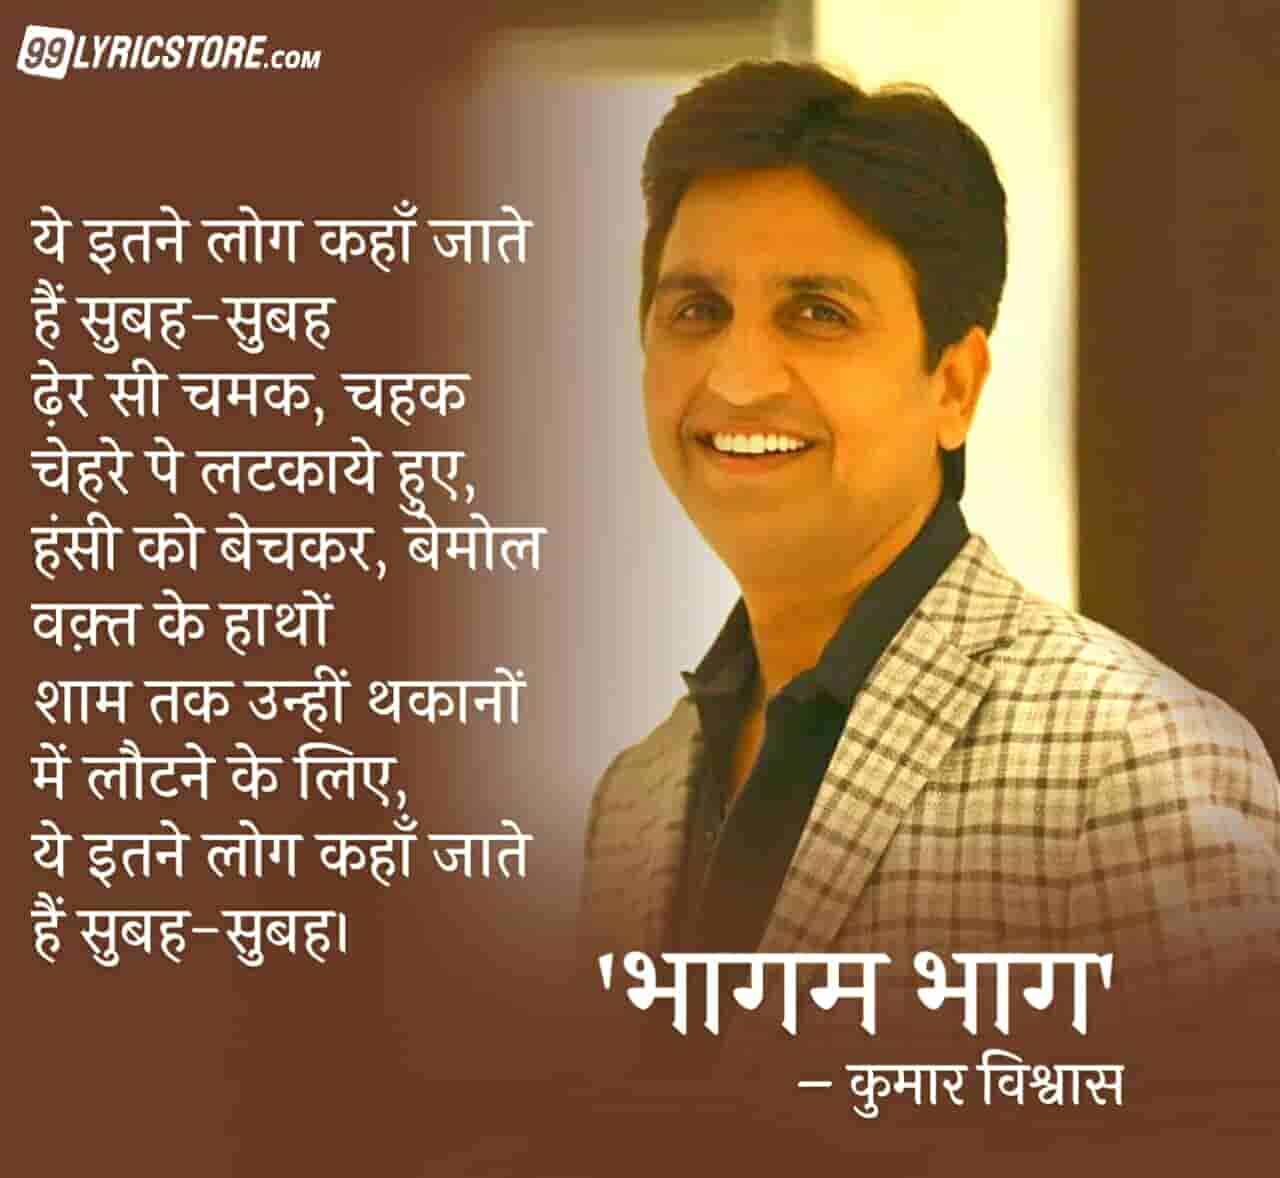 This beautiful Hindi poem 'Bhagam Bhag' is based on all those who travel every day in this crowded world in search of their identity, written by Kumar Vishwas.